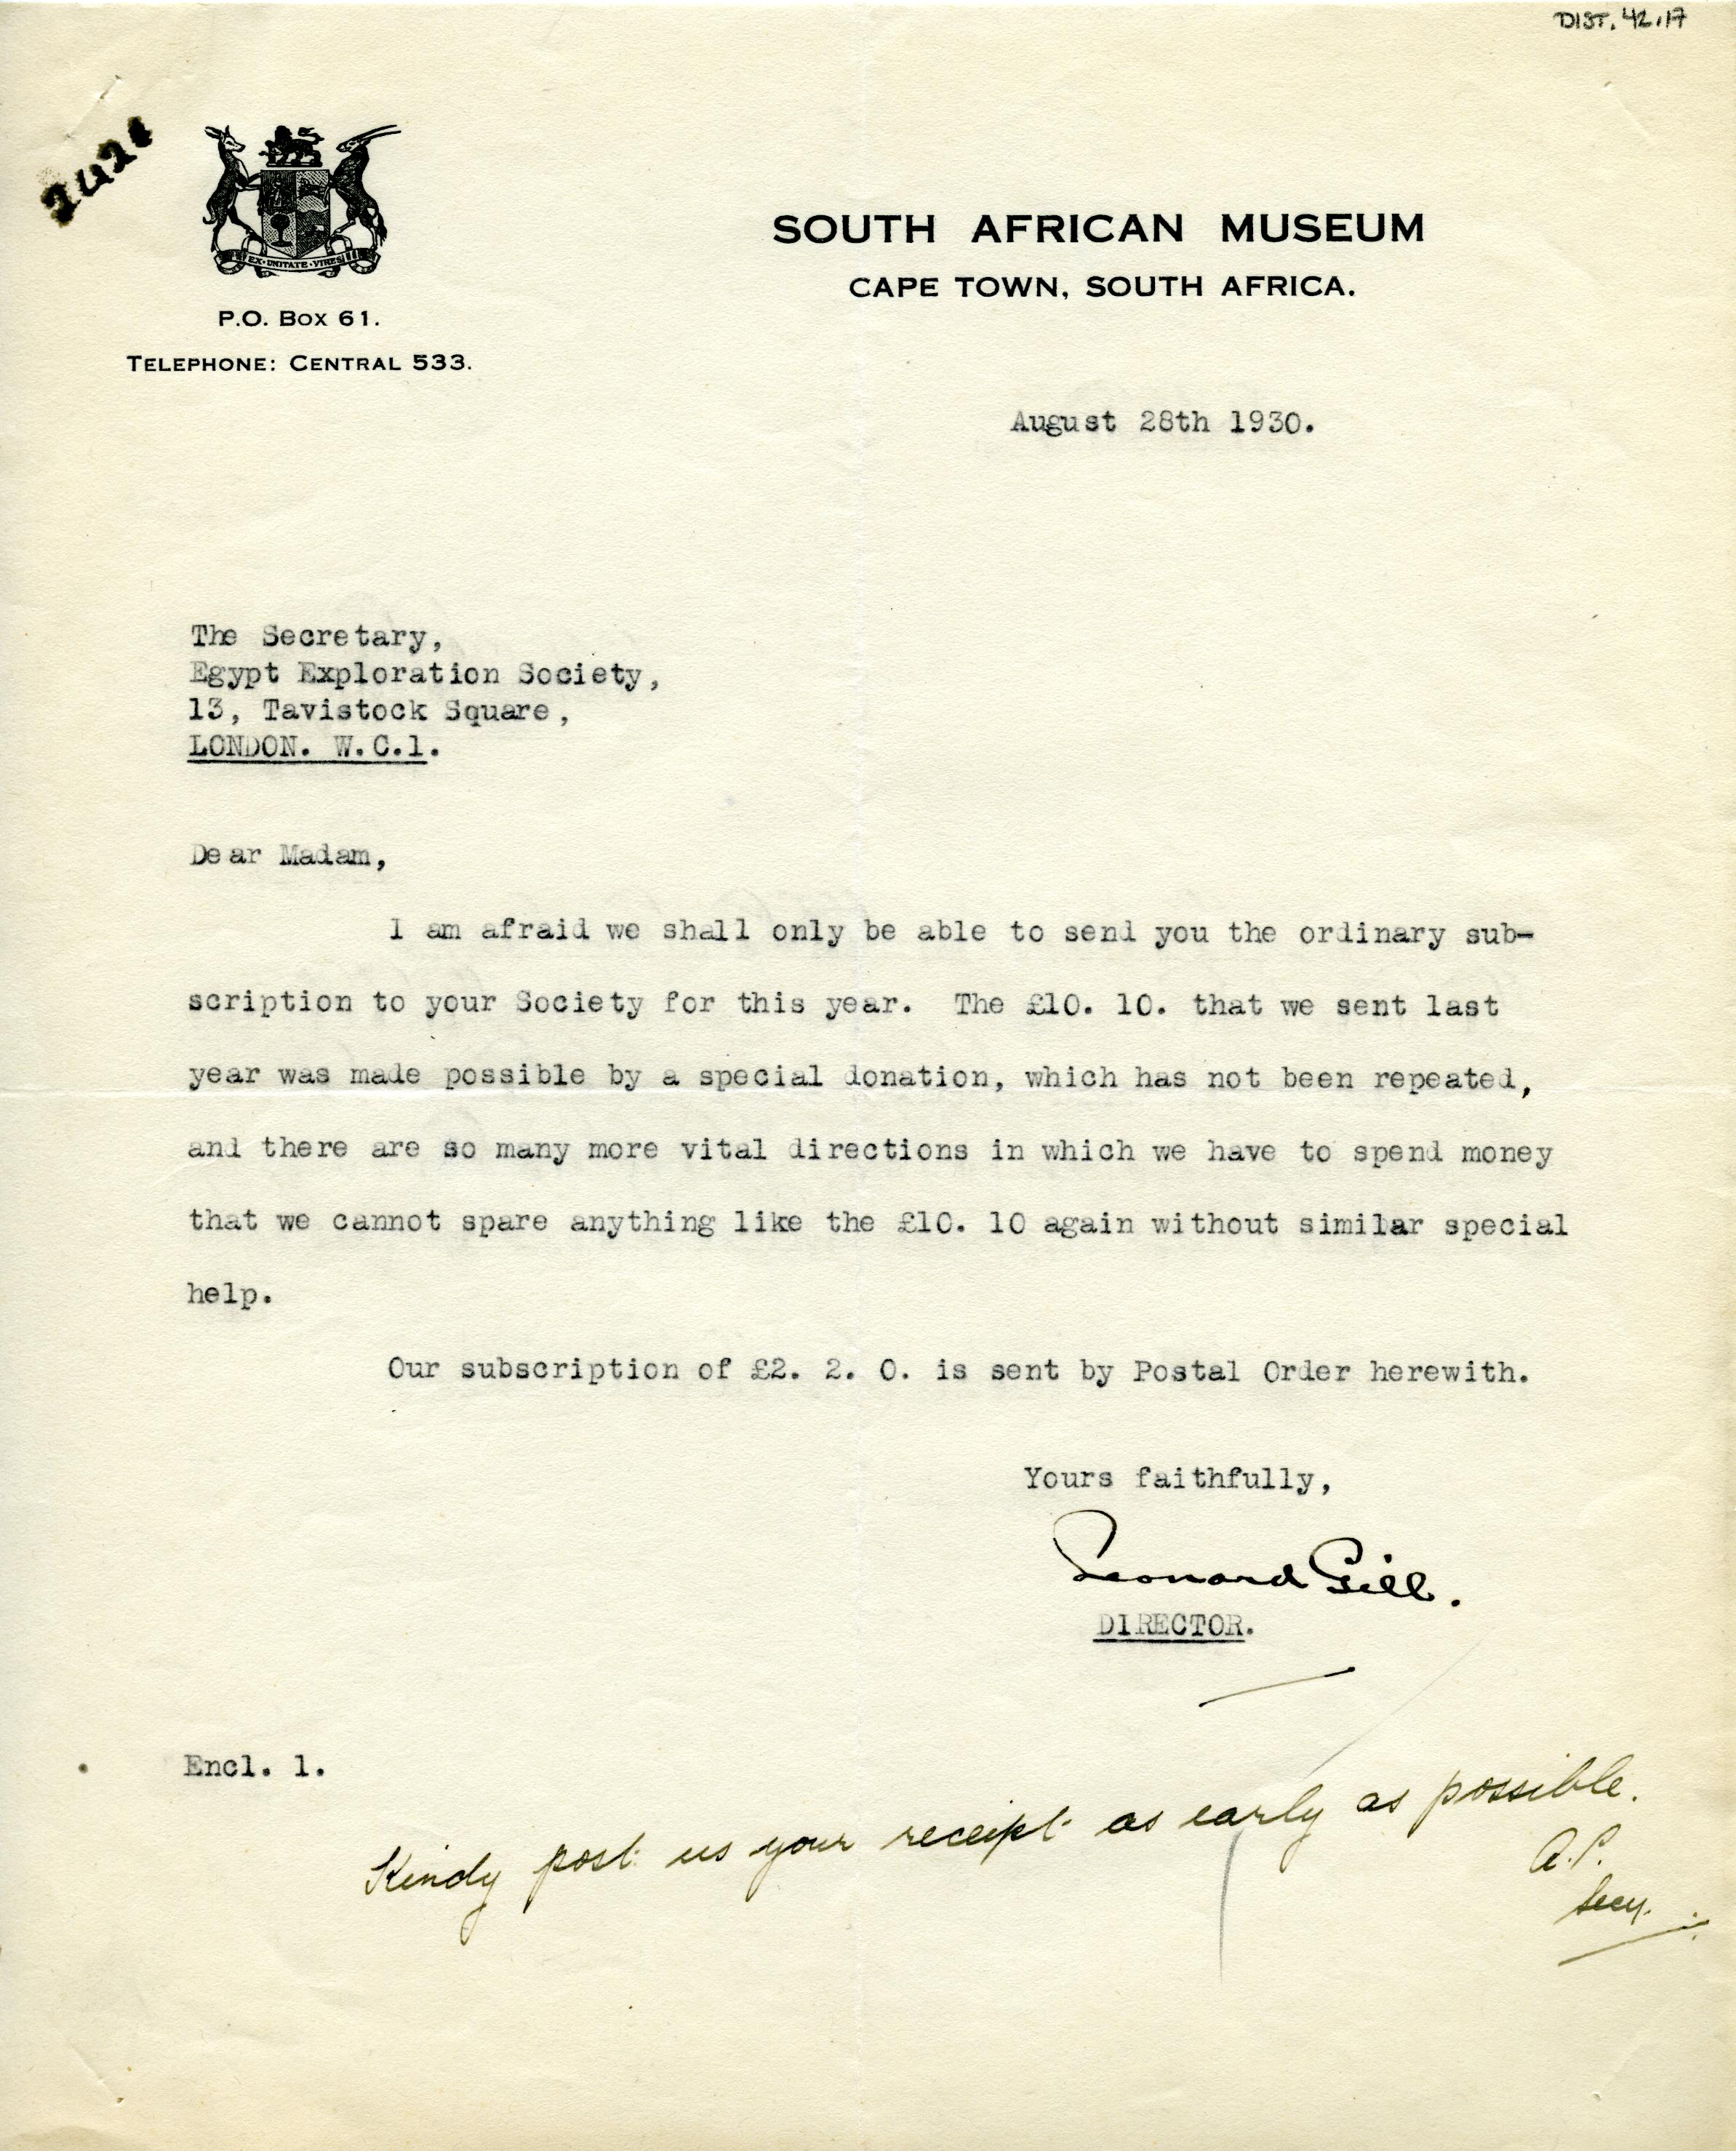 1922-71 Miscellaneous correspondence with museums DIST.42.17